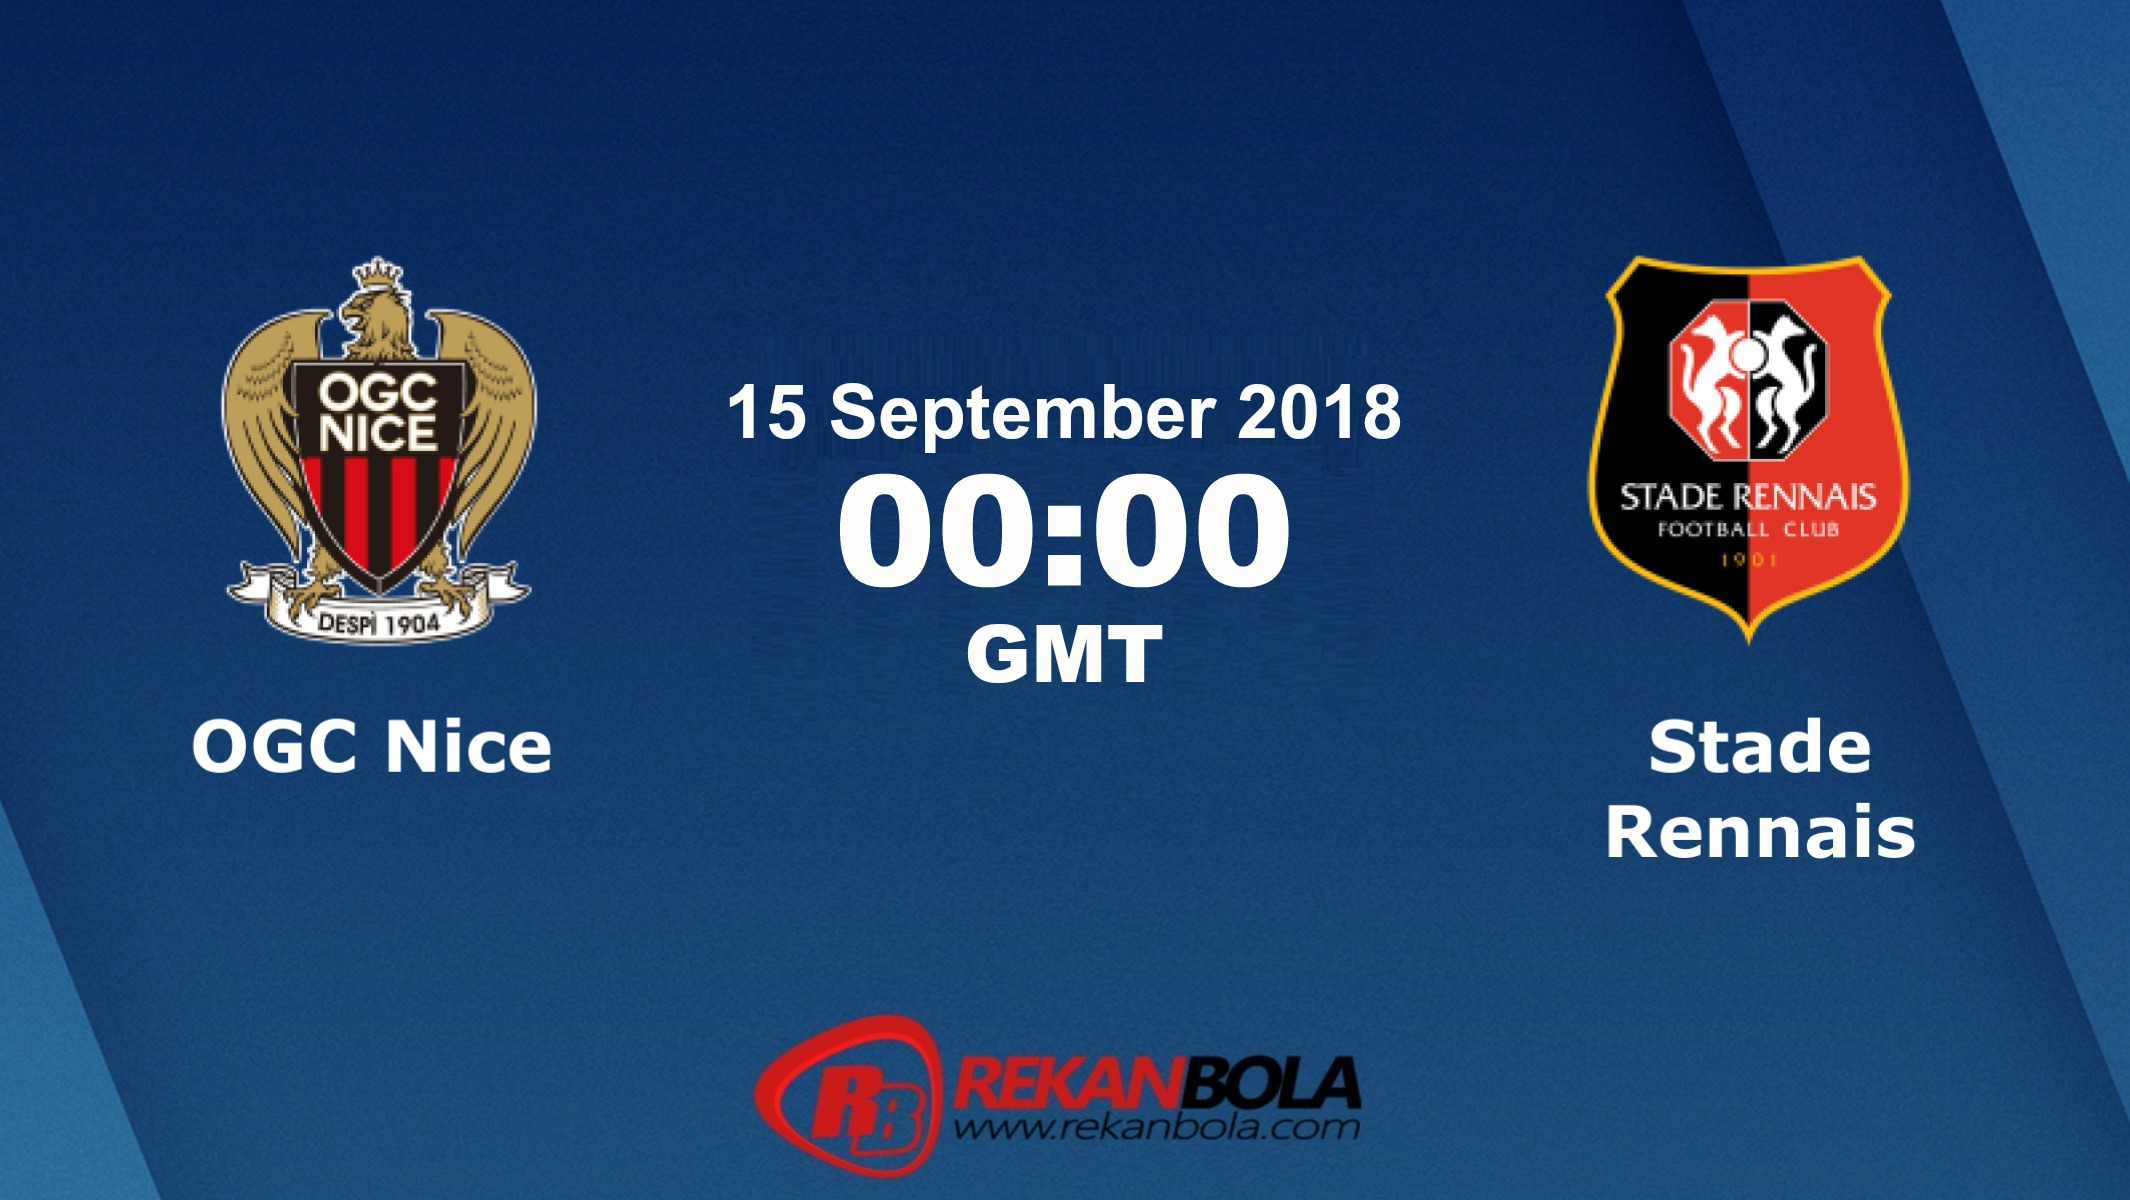 Nonton Siaran Live Streaming Nice Vs Rennais 15 September 2018